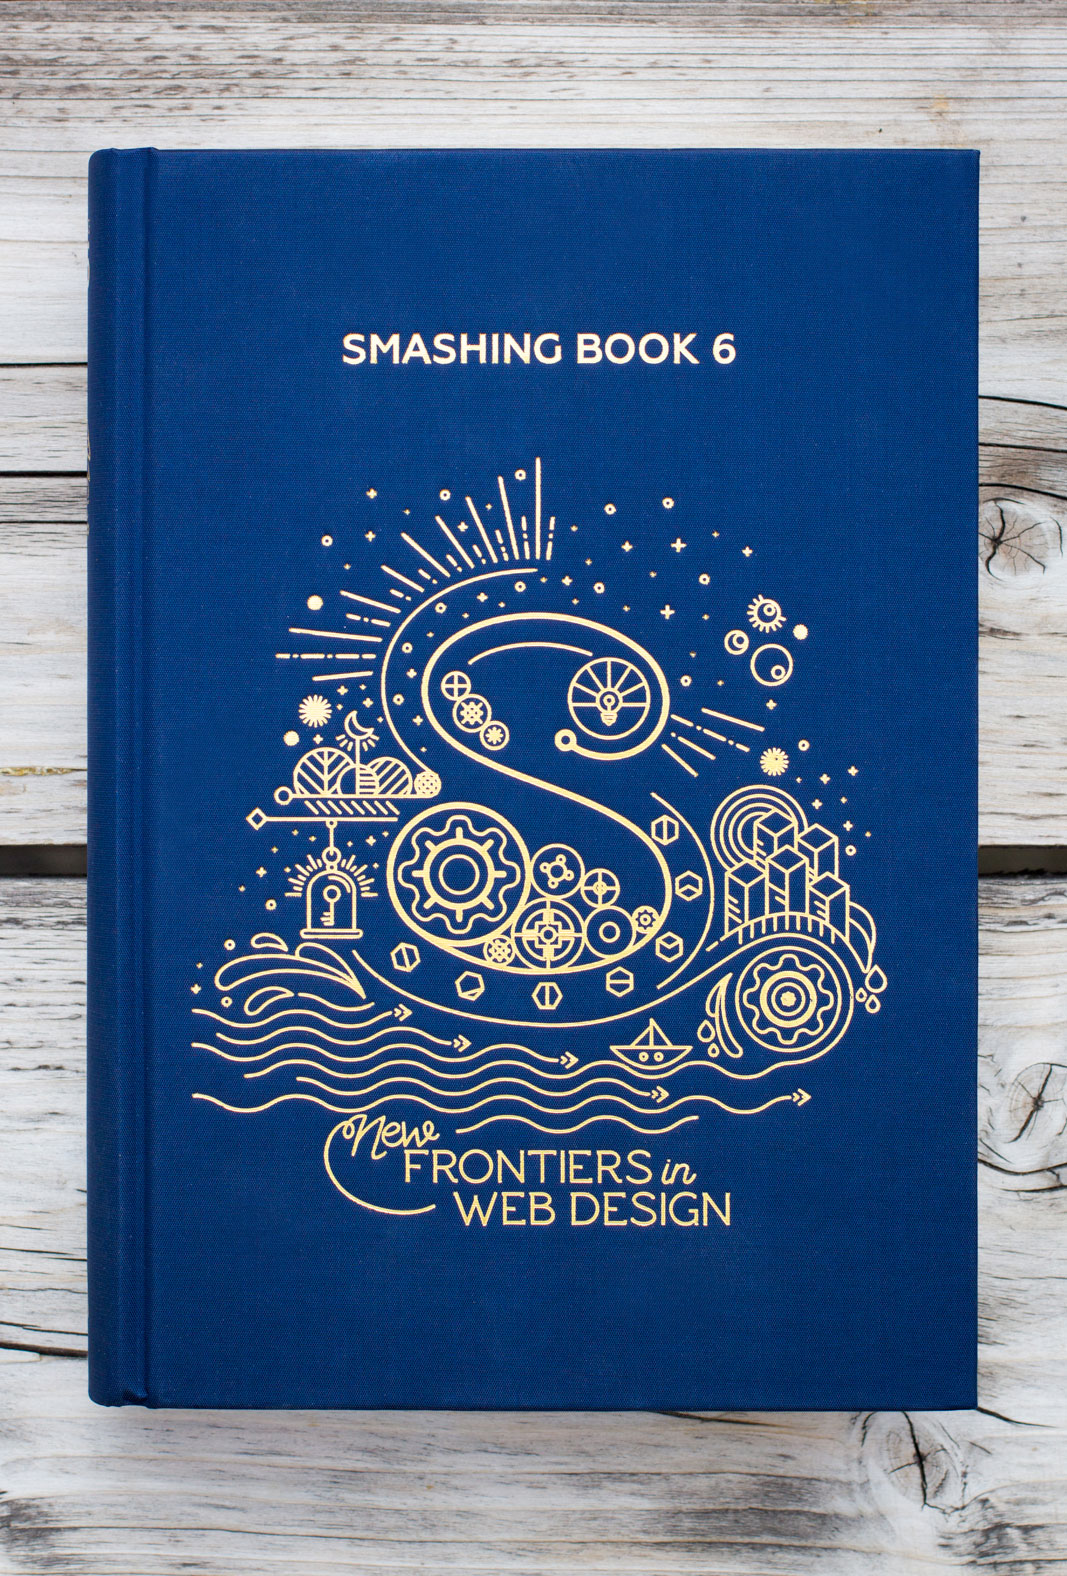 Smashing Book 6 Is Here: New Frontiers In Web Design